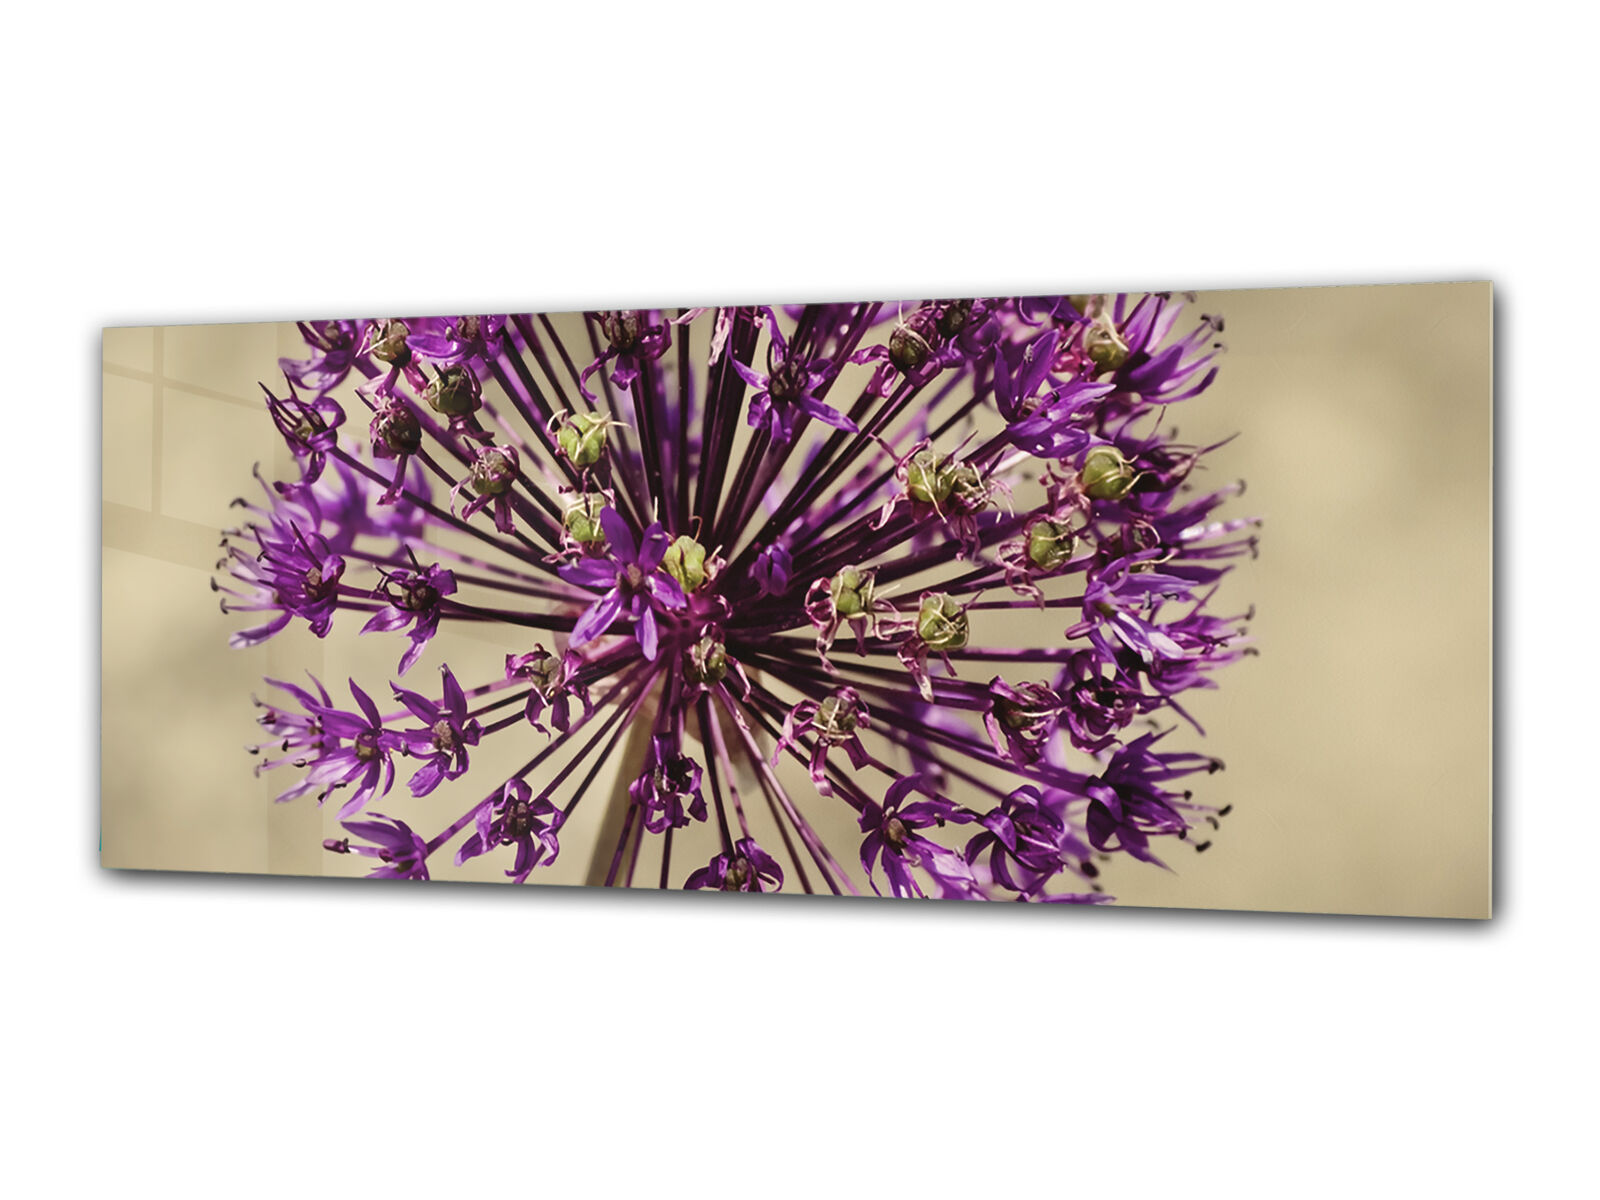 Glass Print Wall Art 80x30 cm Image on Glass Decorative Wall Picture 92244227